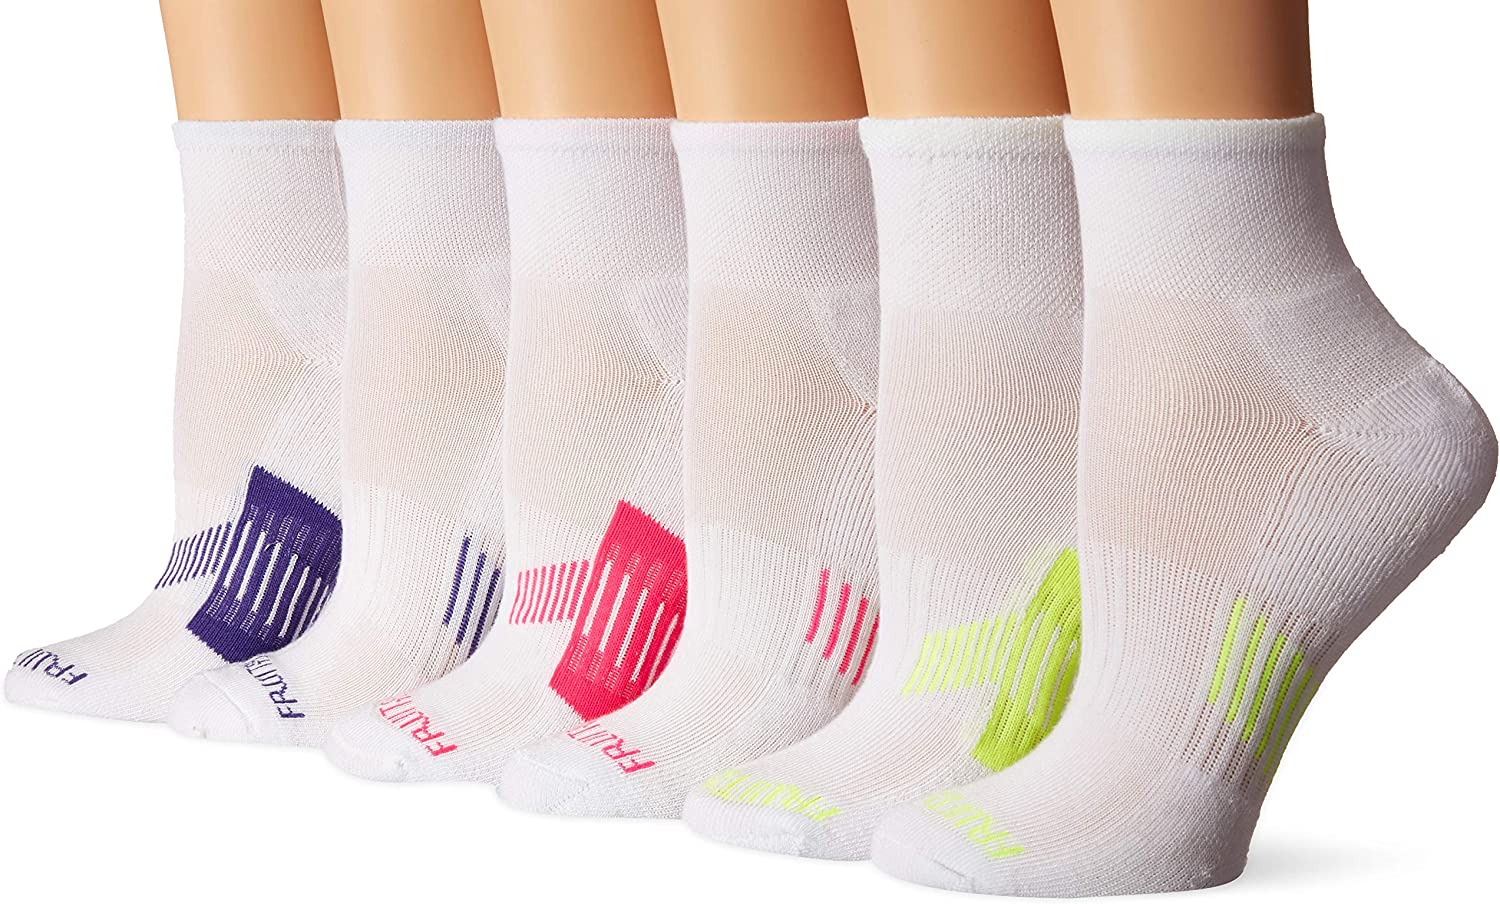 Fruit of the Loom Women's Everyday Active Ankle Socks (6 Pack)